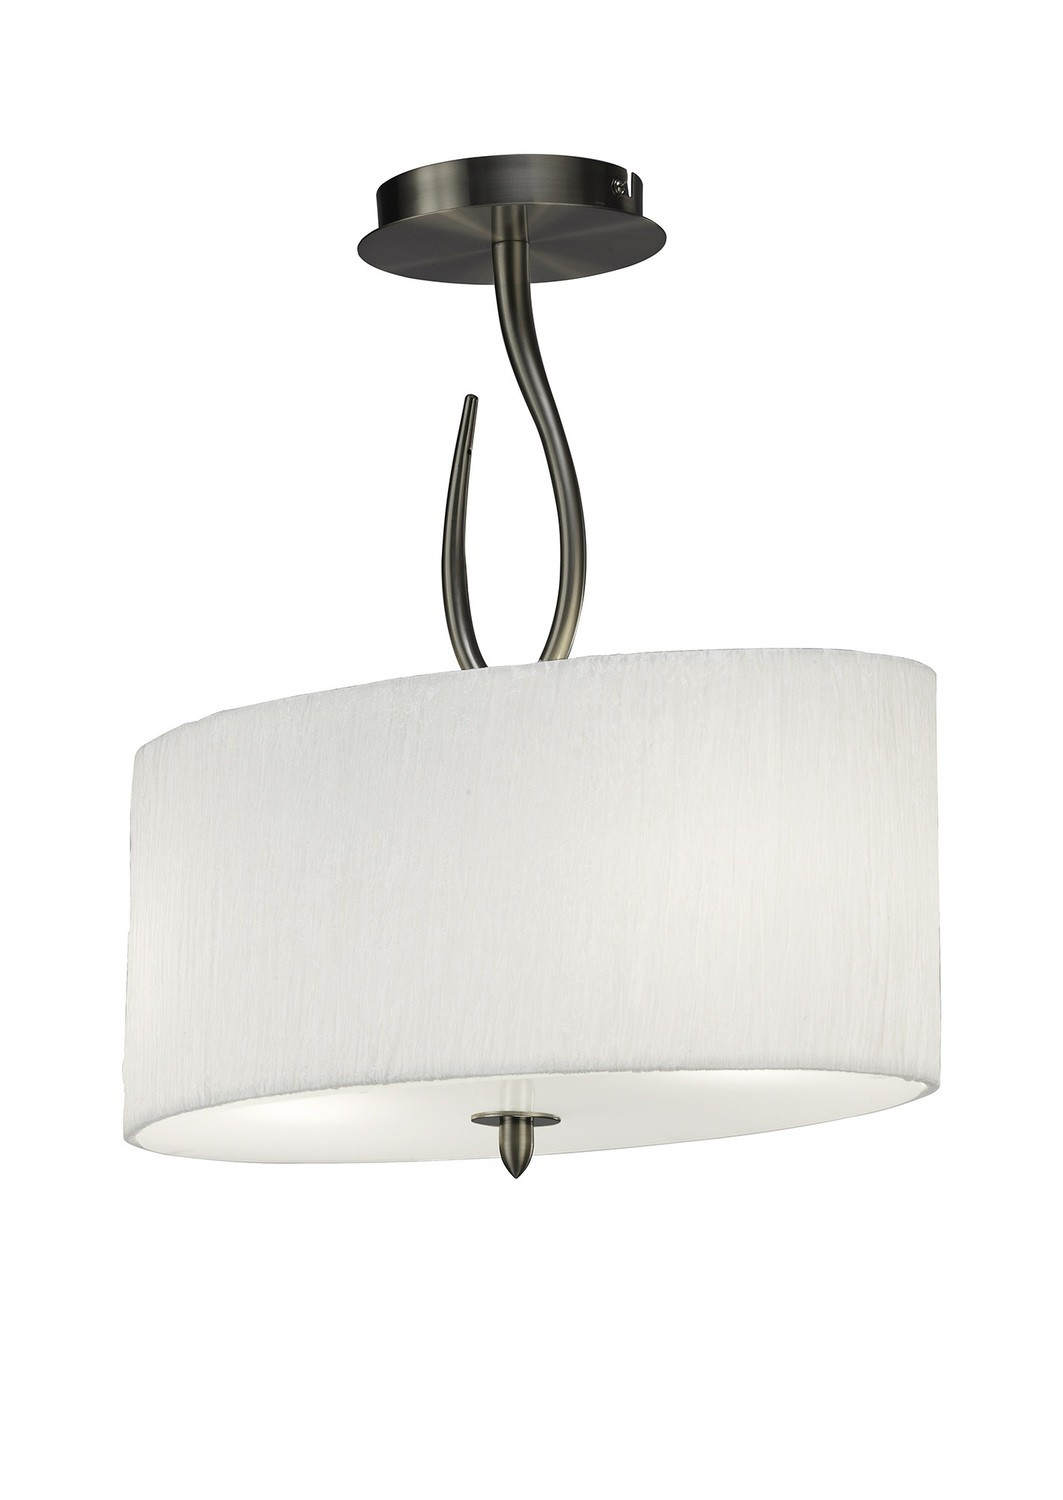 Lua Semi Ceiling 2 Light E27, Satin Nickel With White Shade